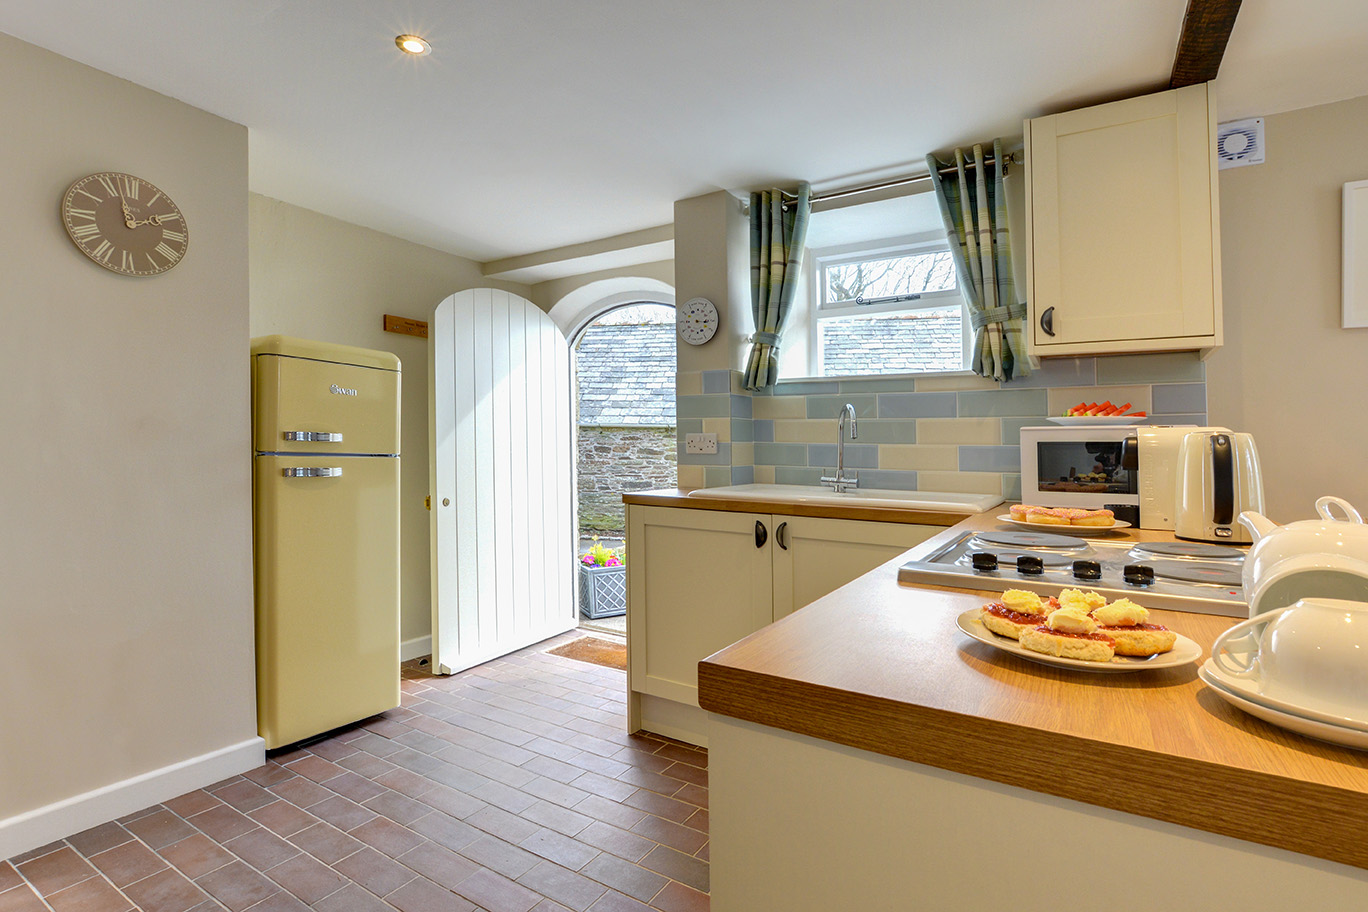 The kitchen of Butterwell luxury self catering converted barn holiday cottage at Penrose Burden in North Cornwall 02.jpg